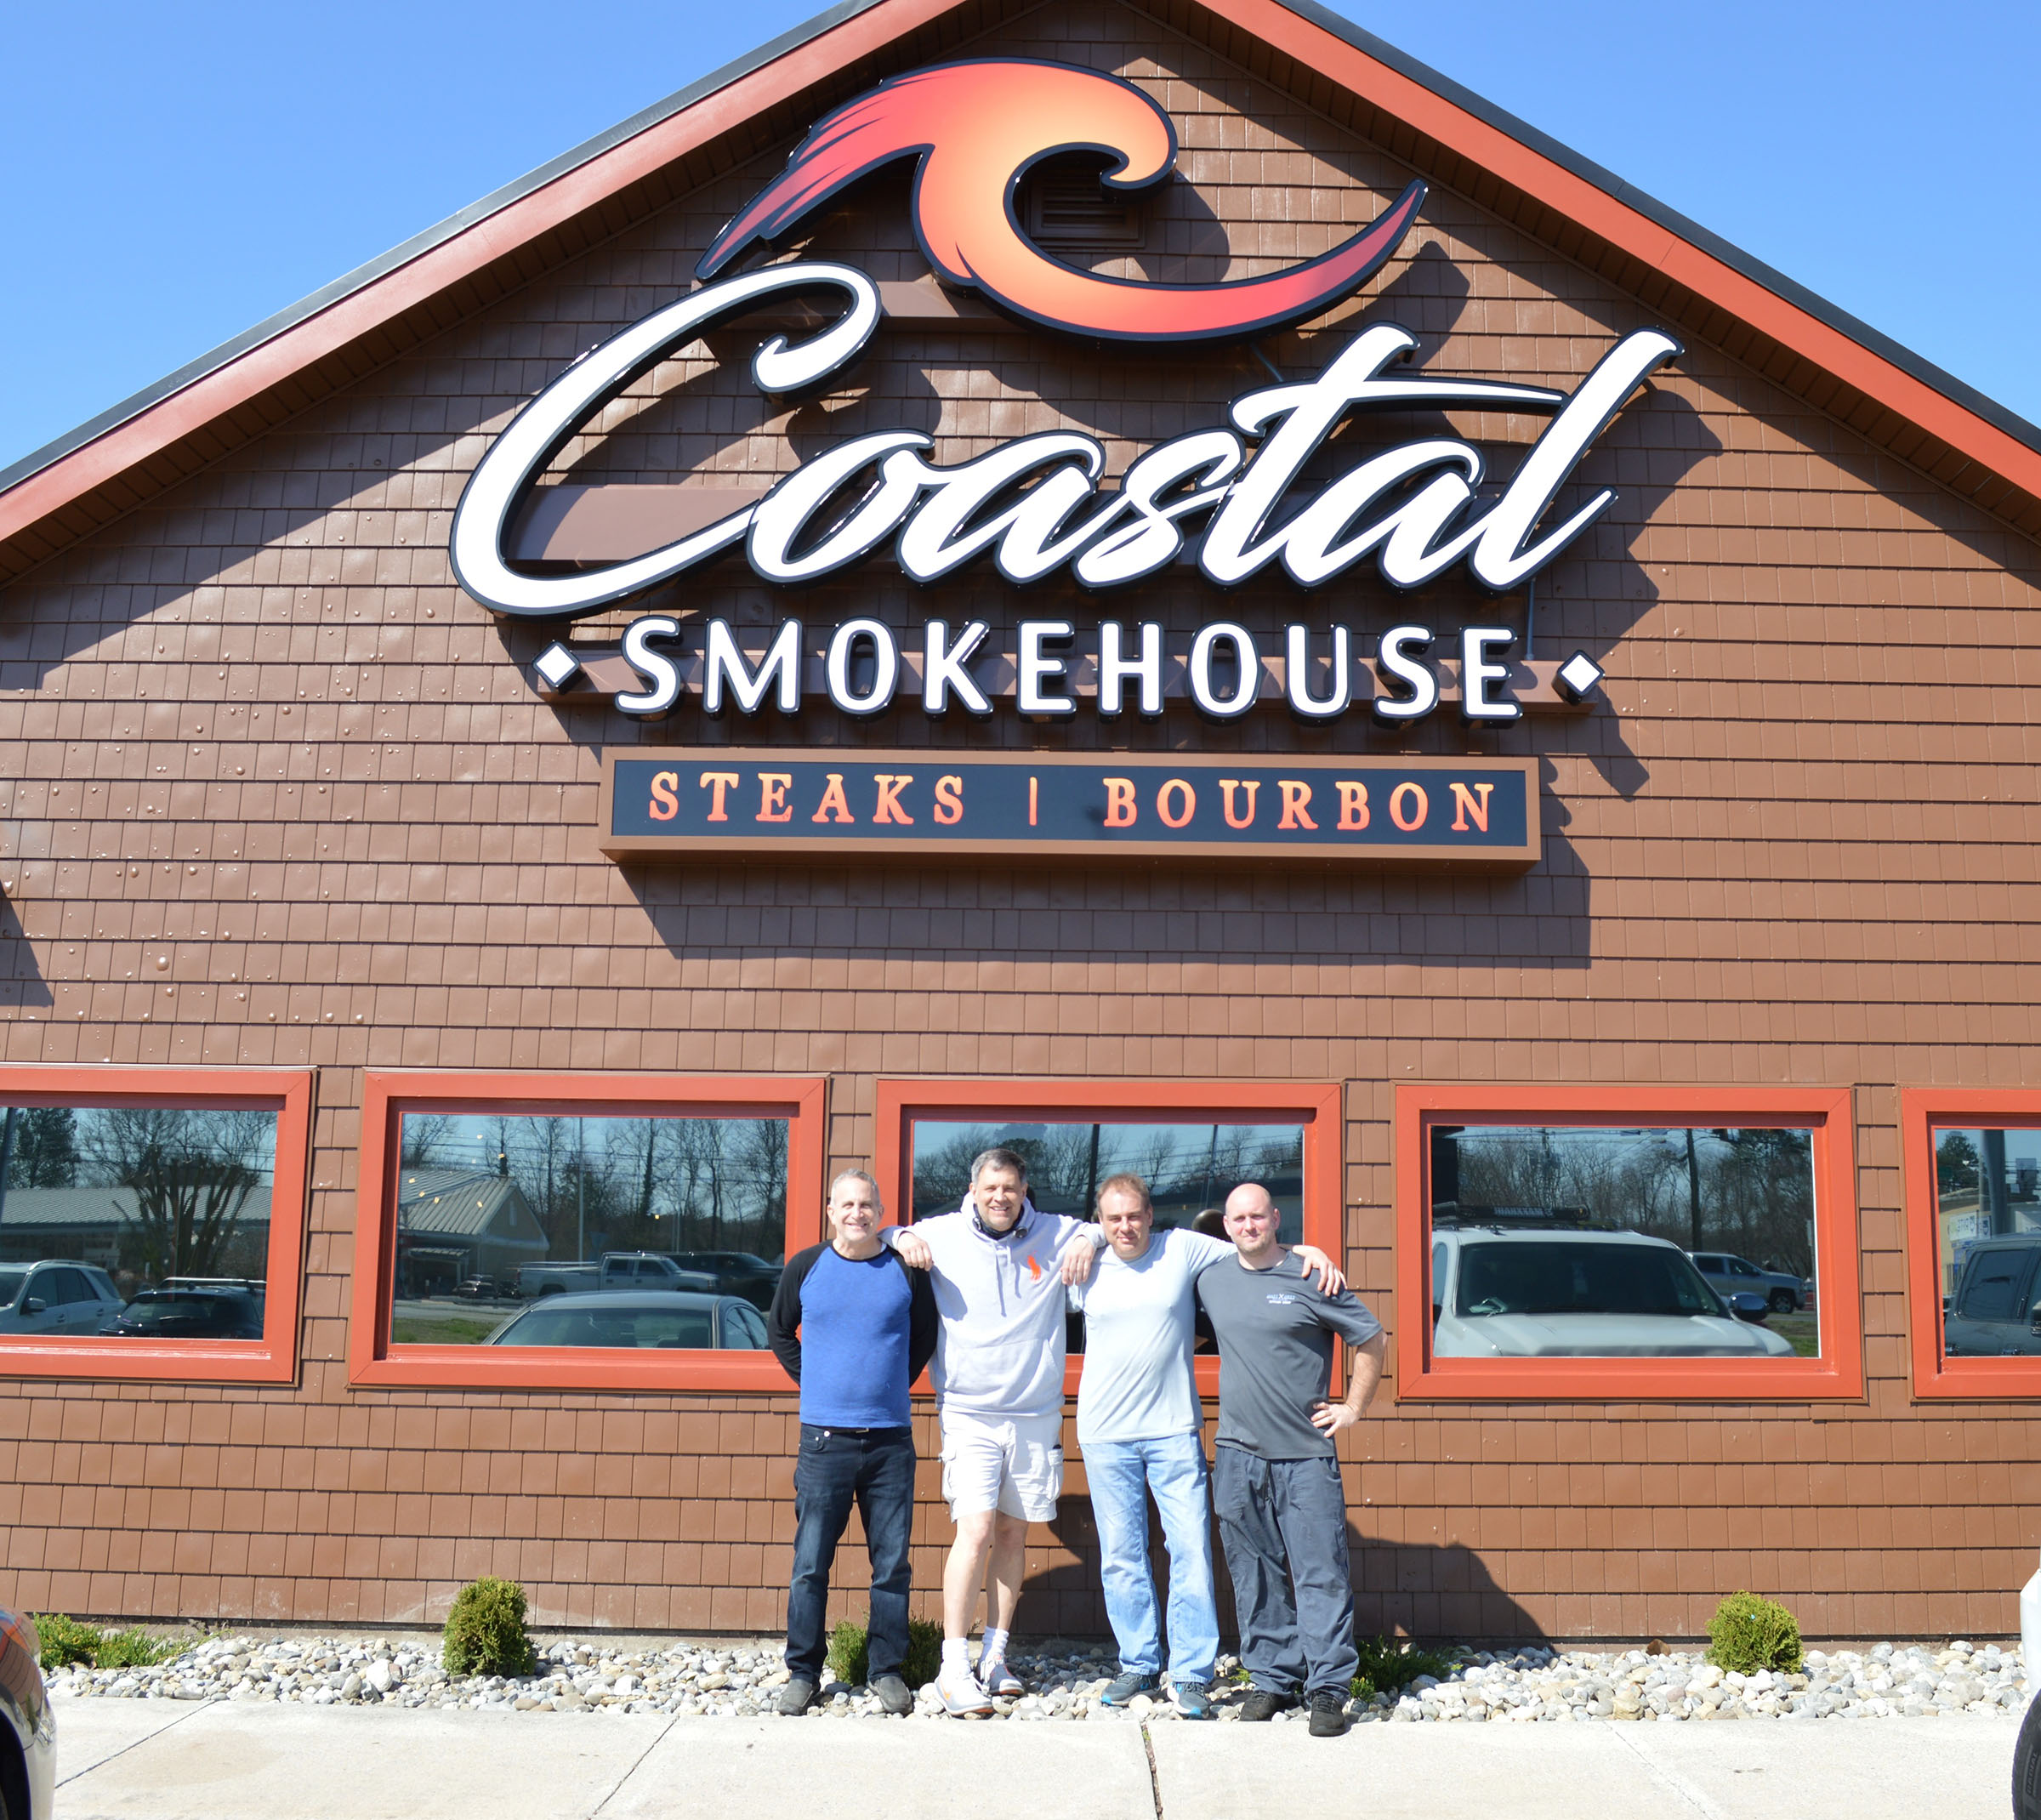 'Coastal' Brand Grows With West Ocean City Smokehouse